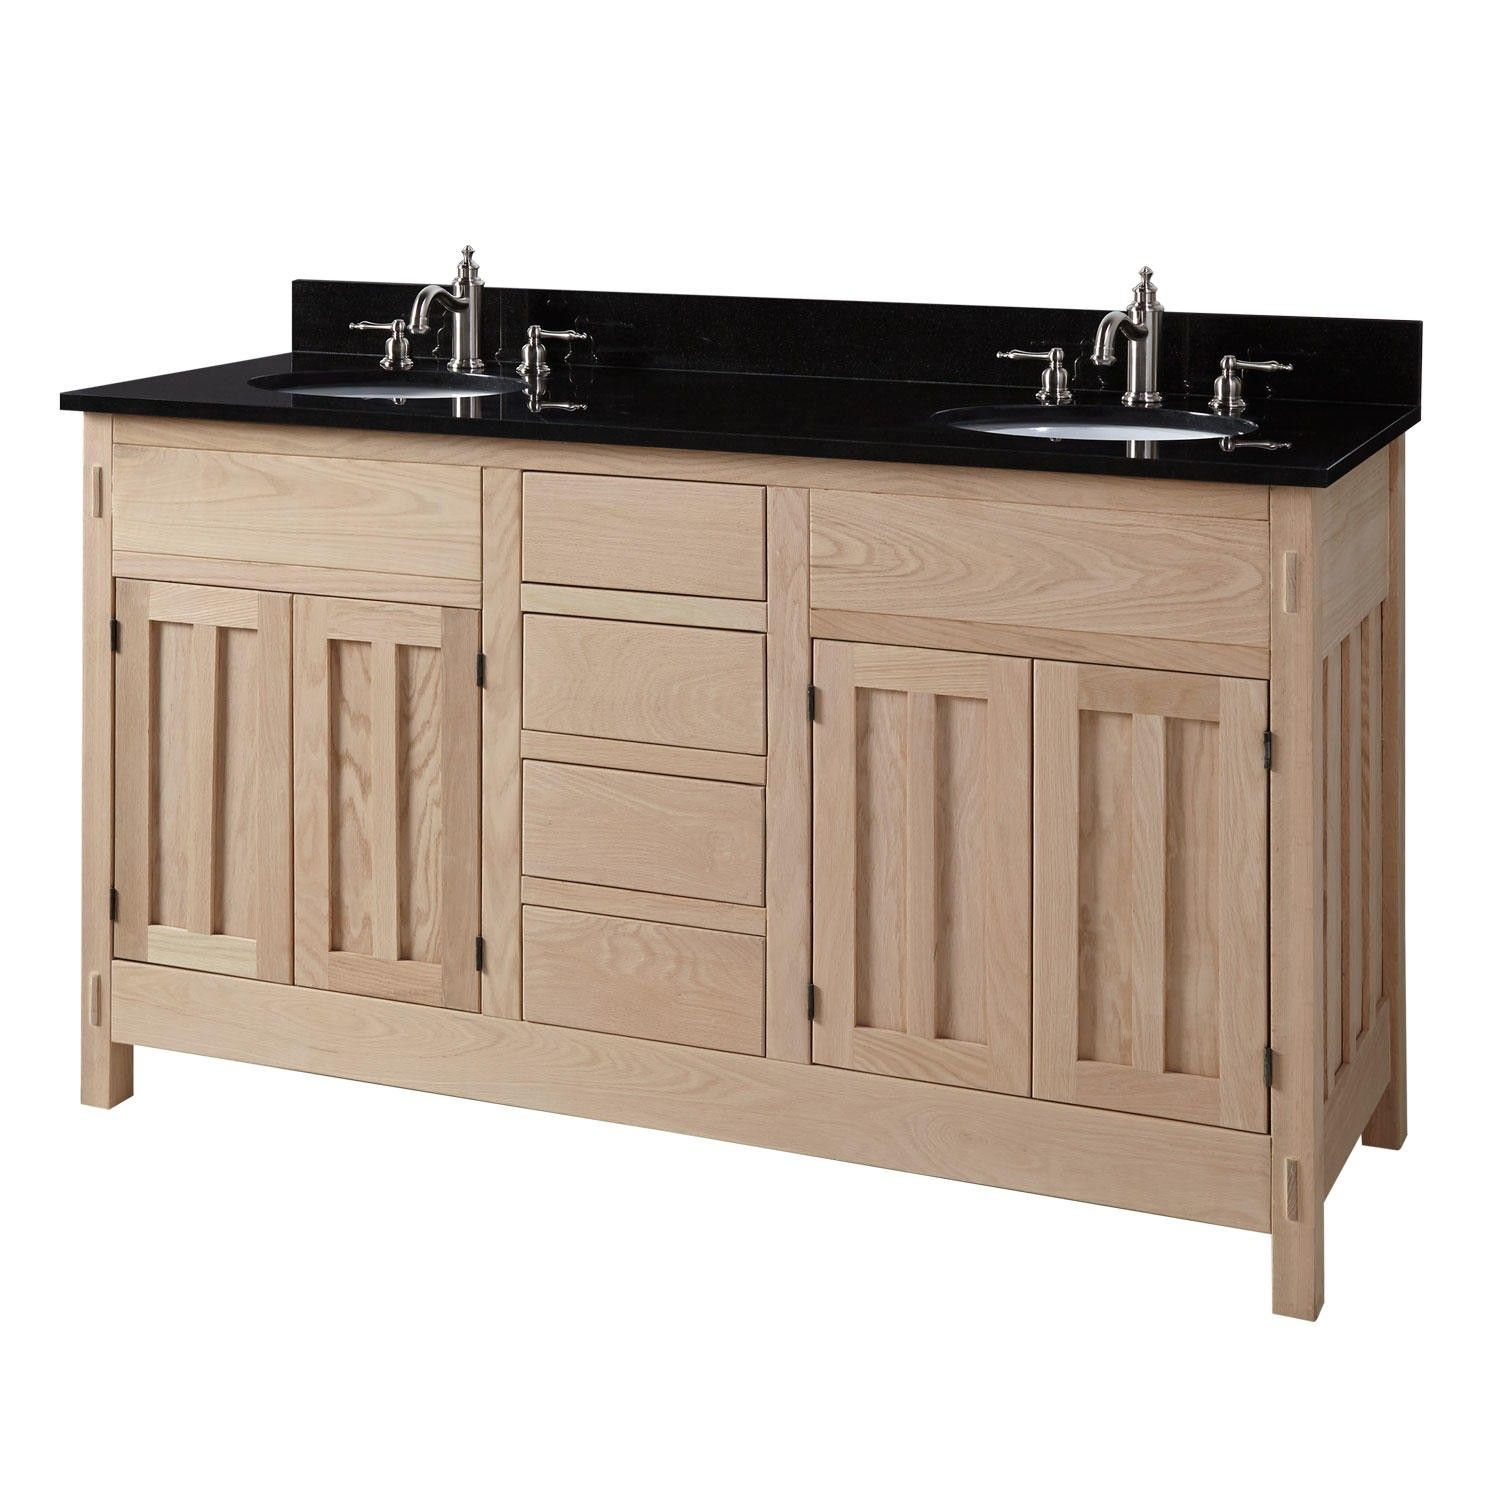 60 Unfinished Mission Hardwood Double Vanity For Undermount Sinks Unfinished Bathroom Vanities Bathroom Vanity Wood Bathroom Vanity